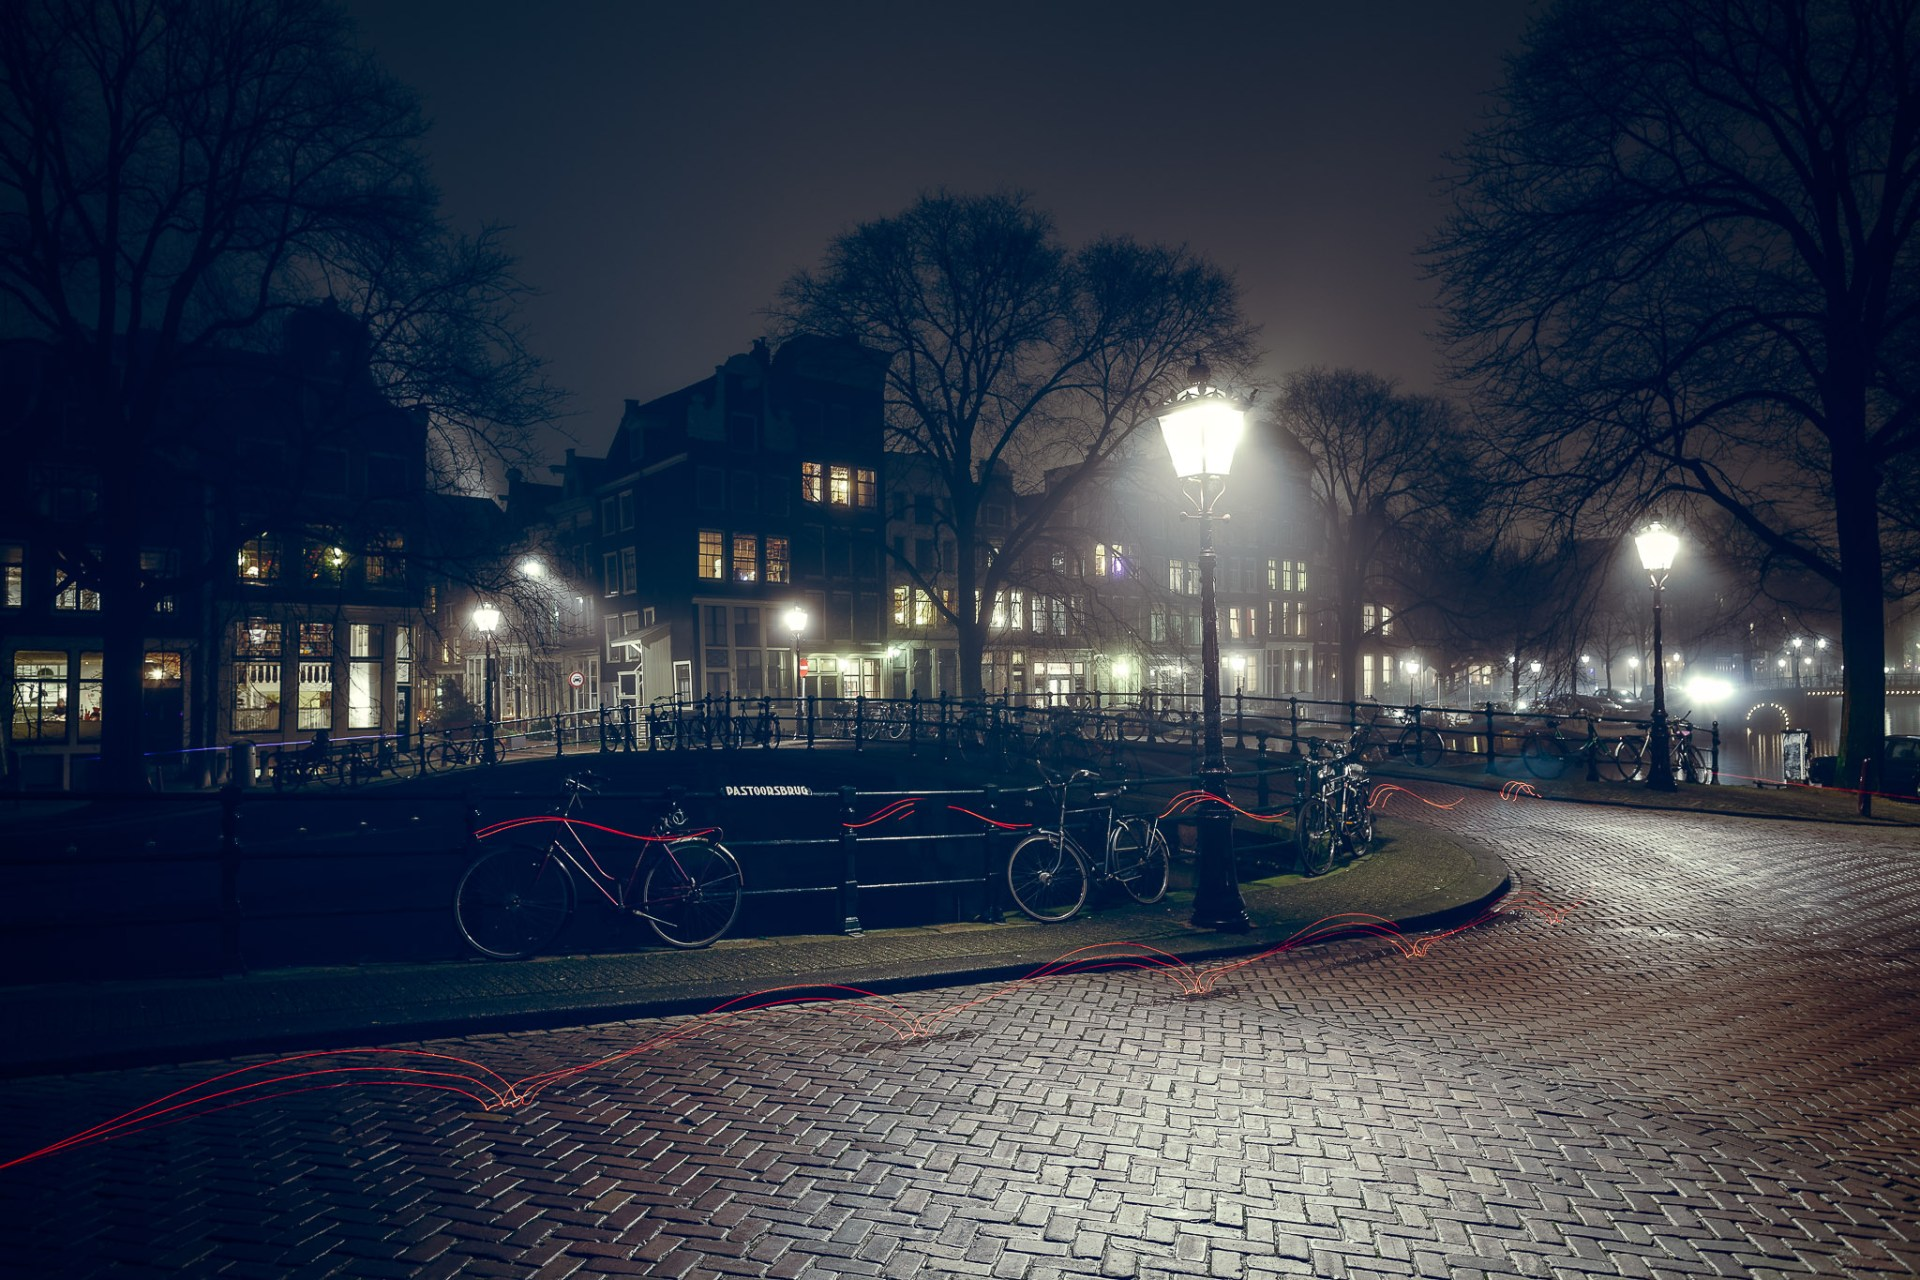 A foggy evening on the Pastoorbrug in Amsterdam